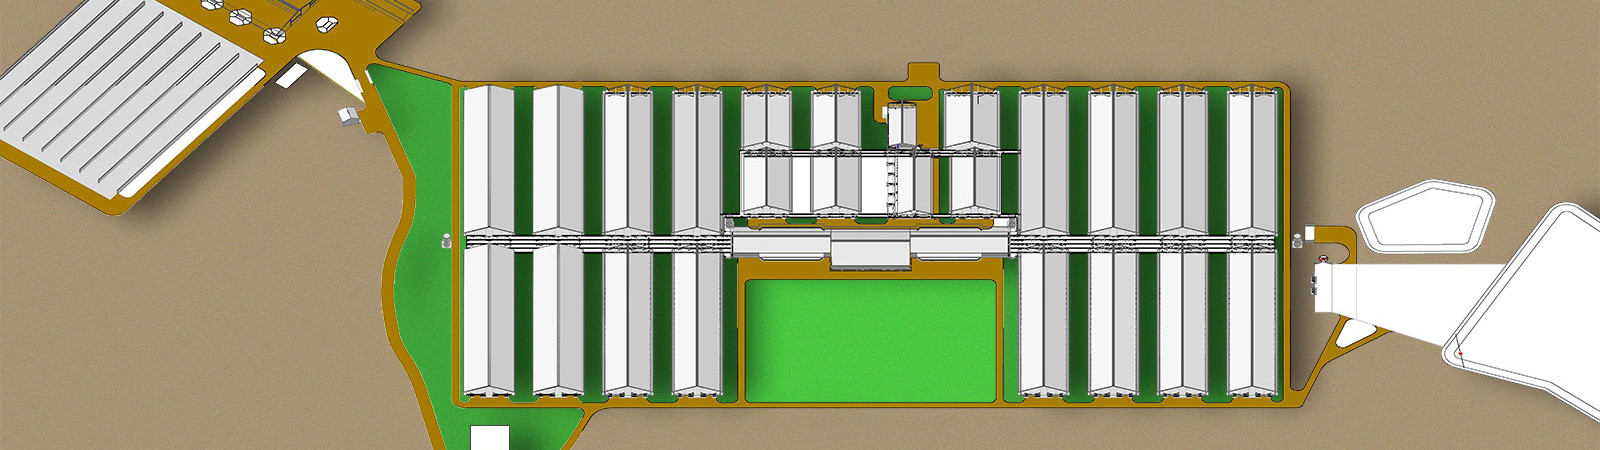 rendering of facility layout